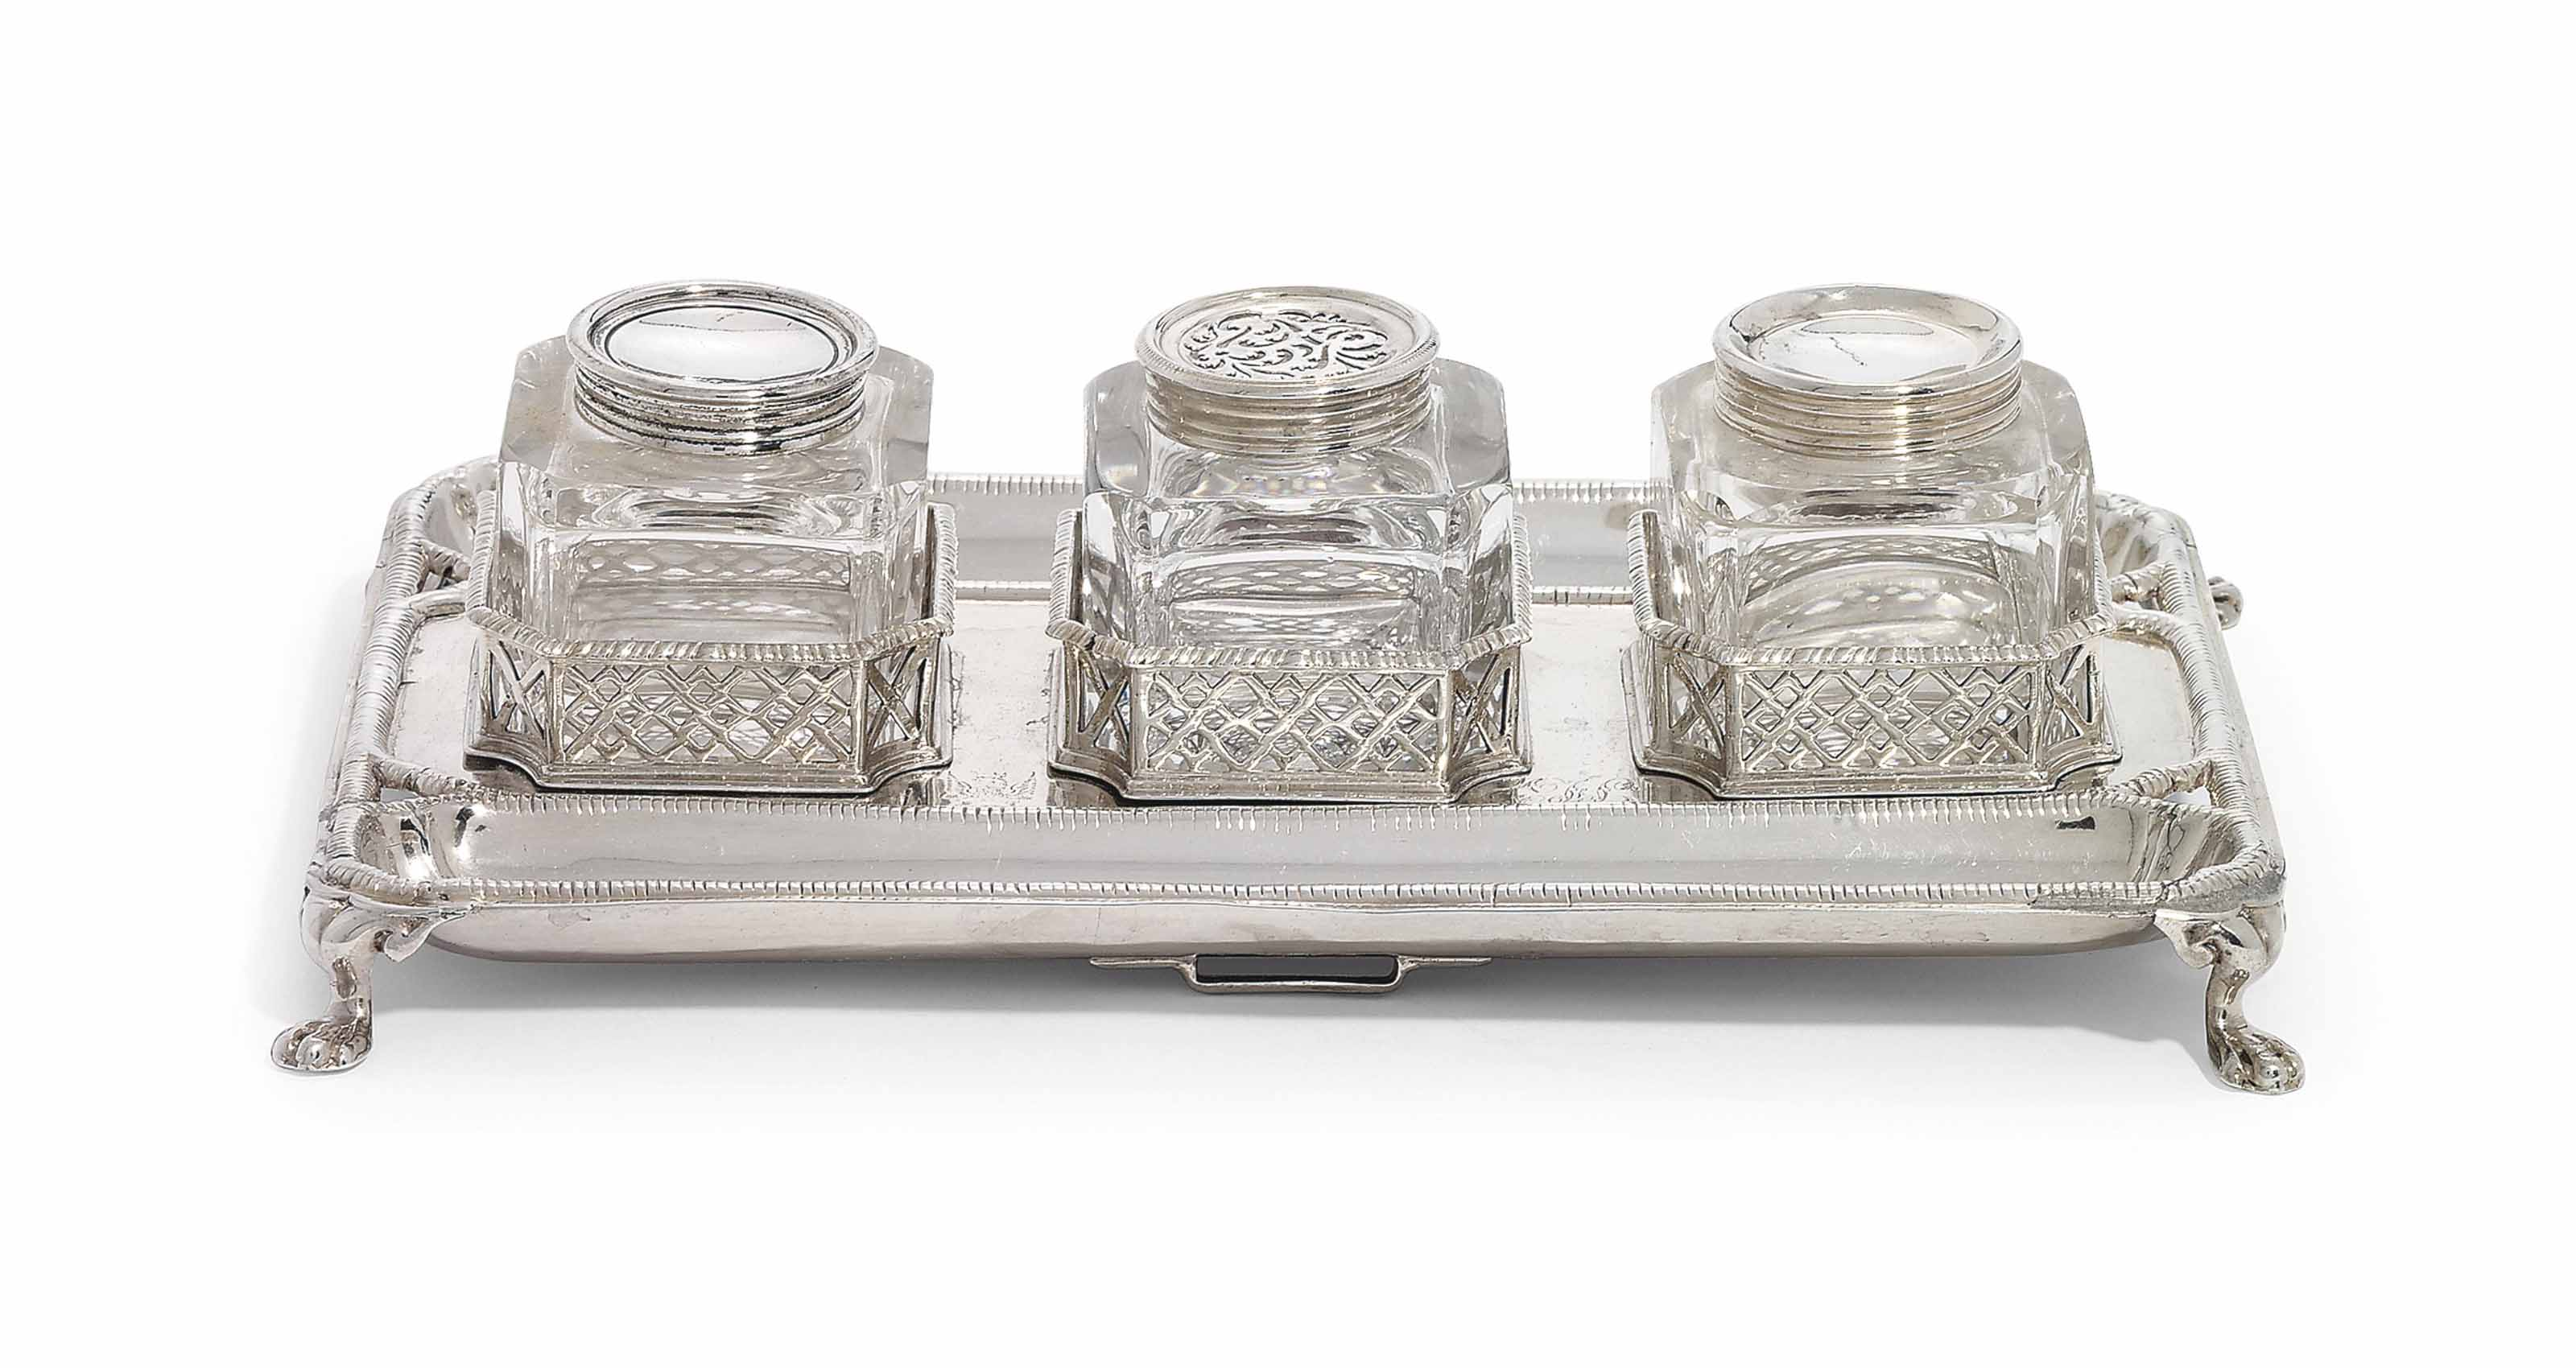 A GEORGE III SILVER OBLONG INKSTAND